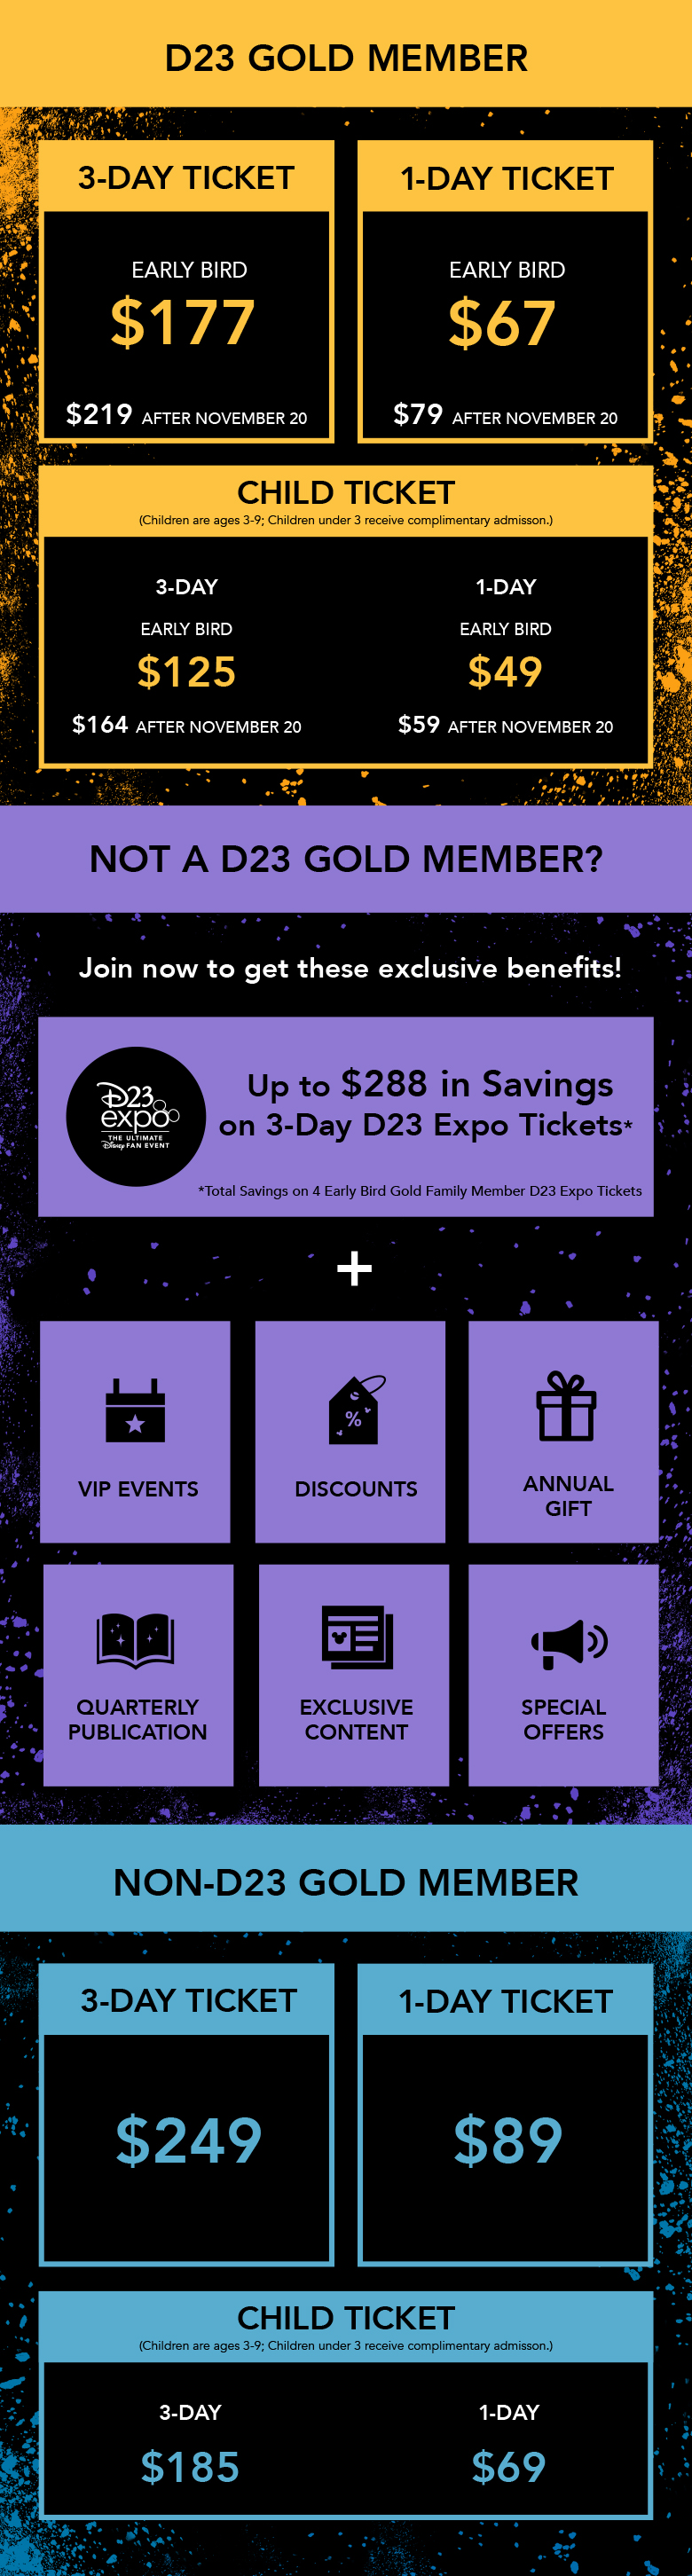 D23 Expo 2019 Ticketing infographic